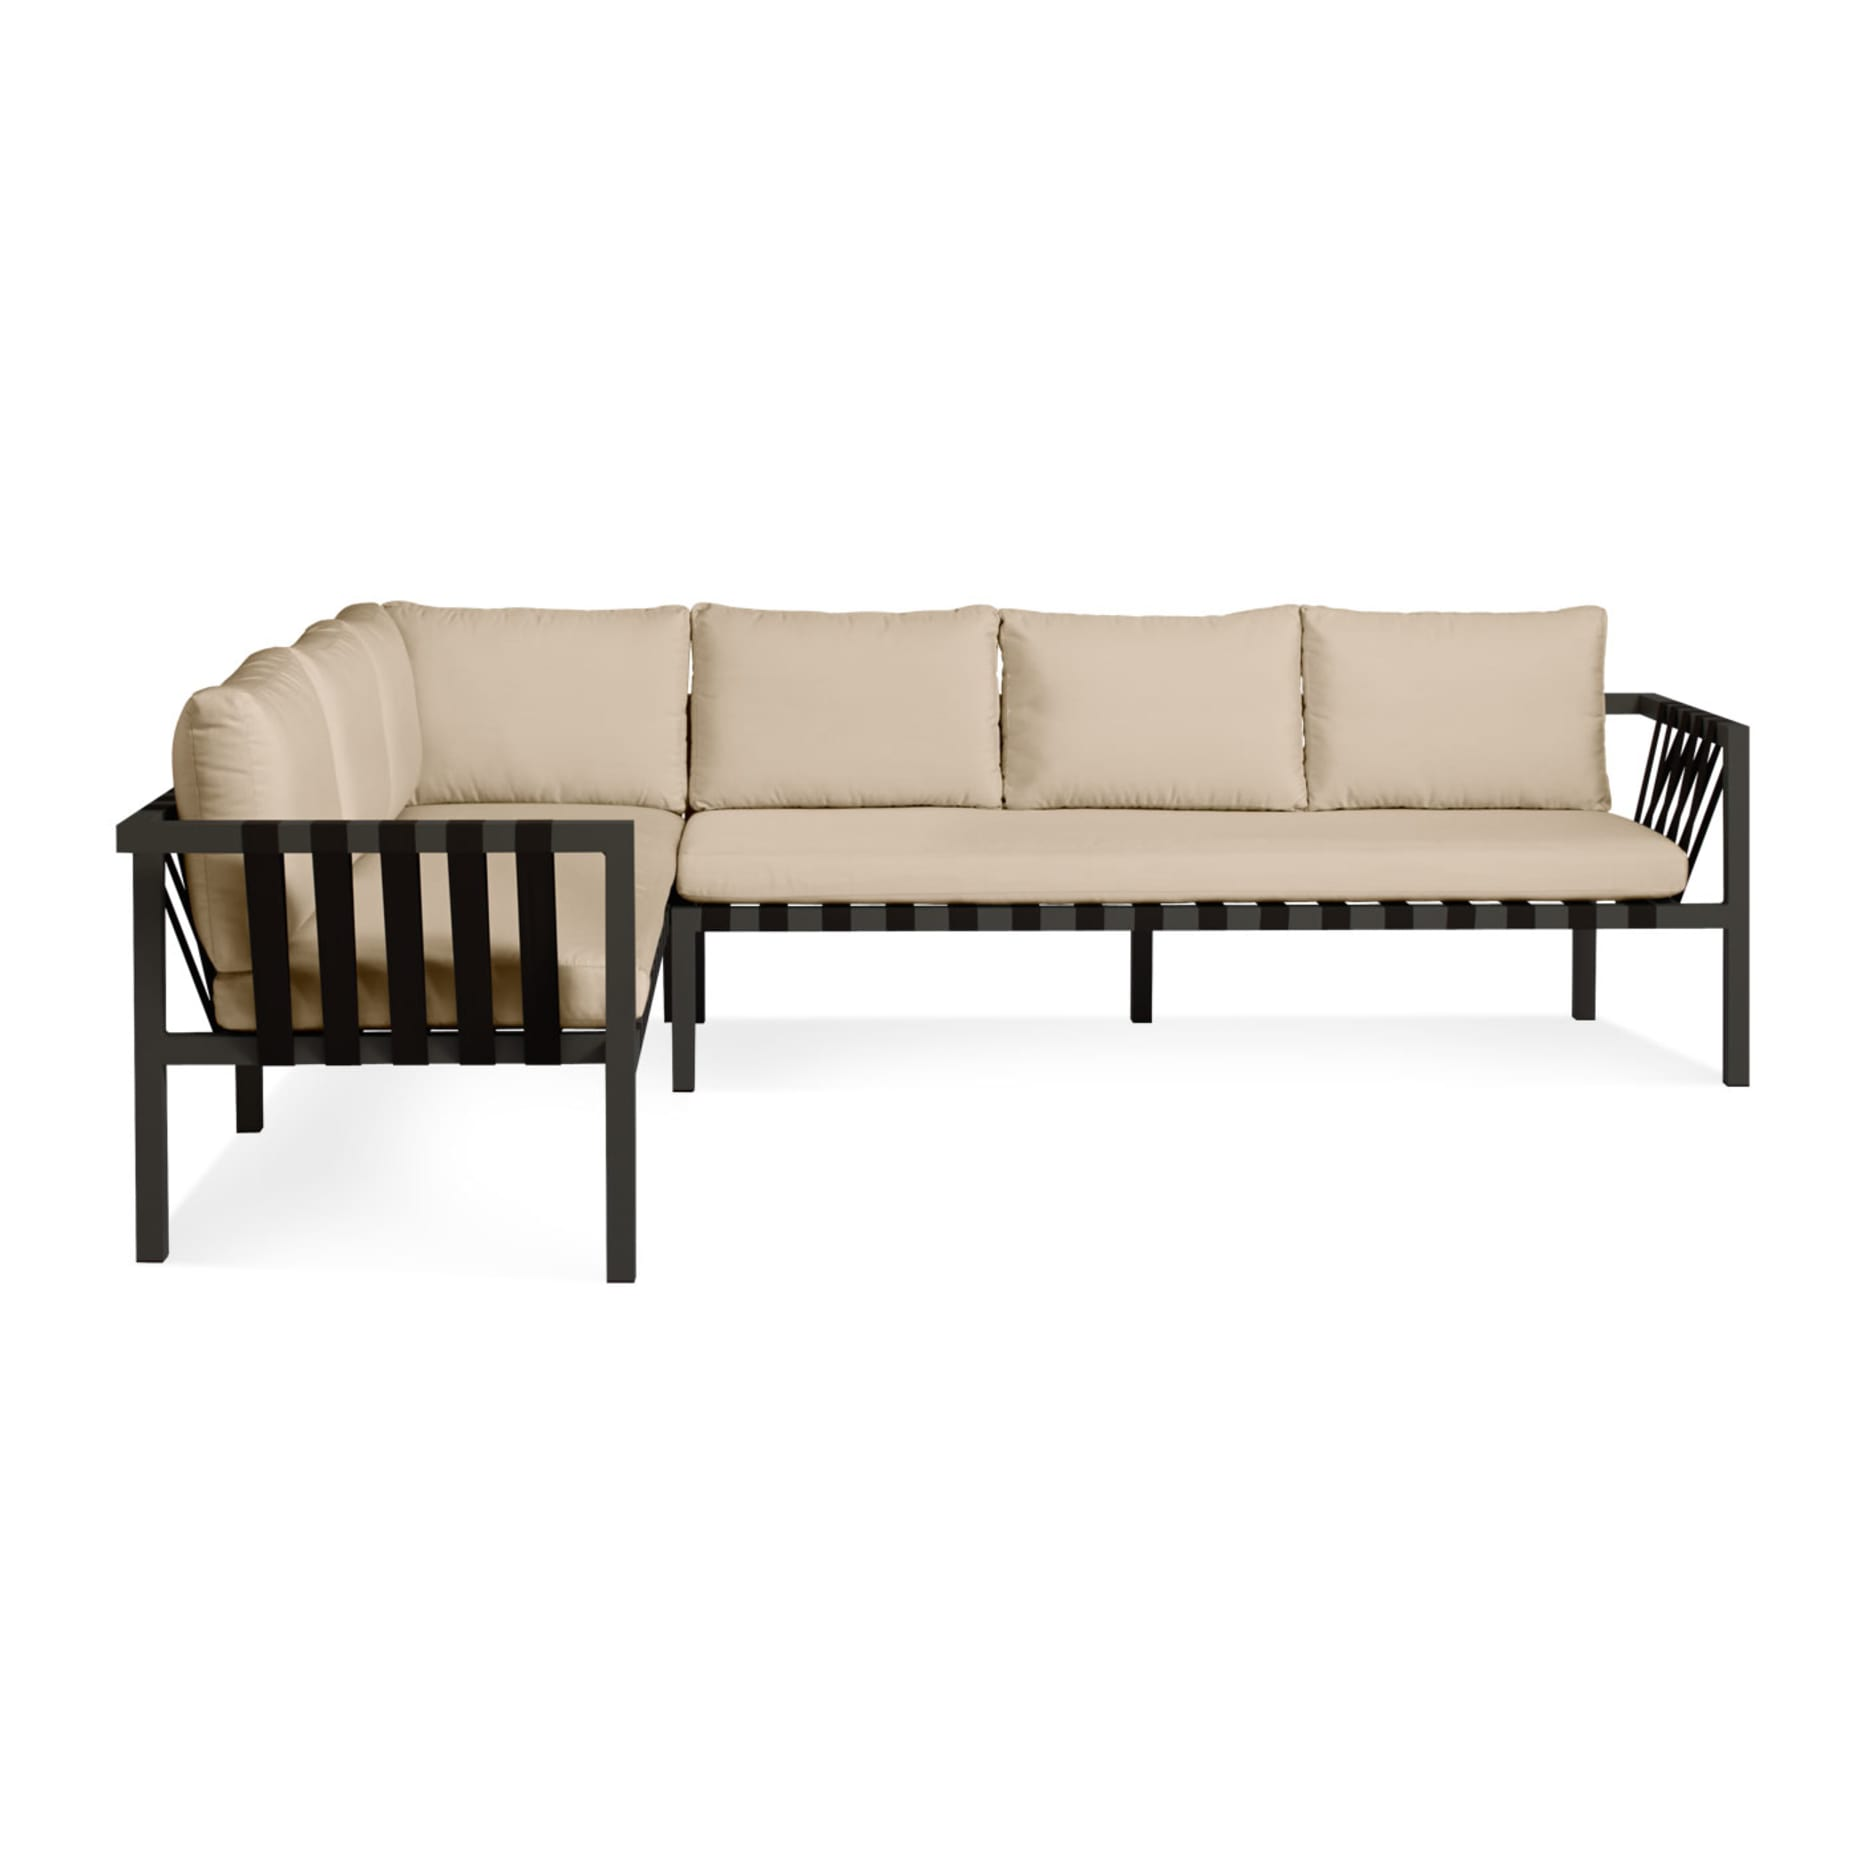 ji1 xllfsc cb jibe extra large left sectional carbon sunbrella taupe